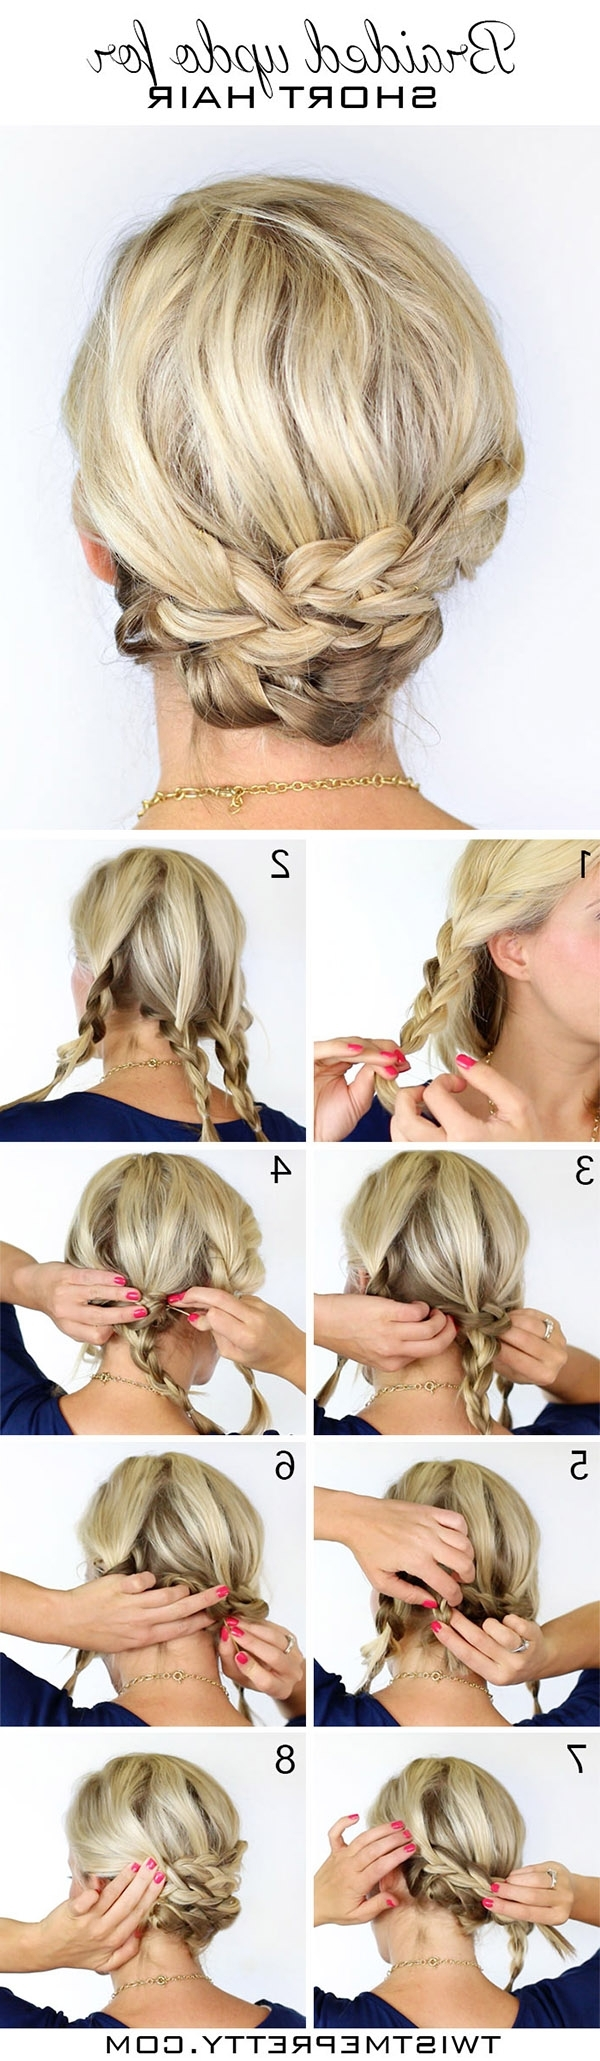 20 Diy Wedding Hairstyles With Tutorials To Try On Your Own Pertaining To Most Up To Date Diy Wedding Updos For Long Hair (View 2 of 15)